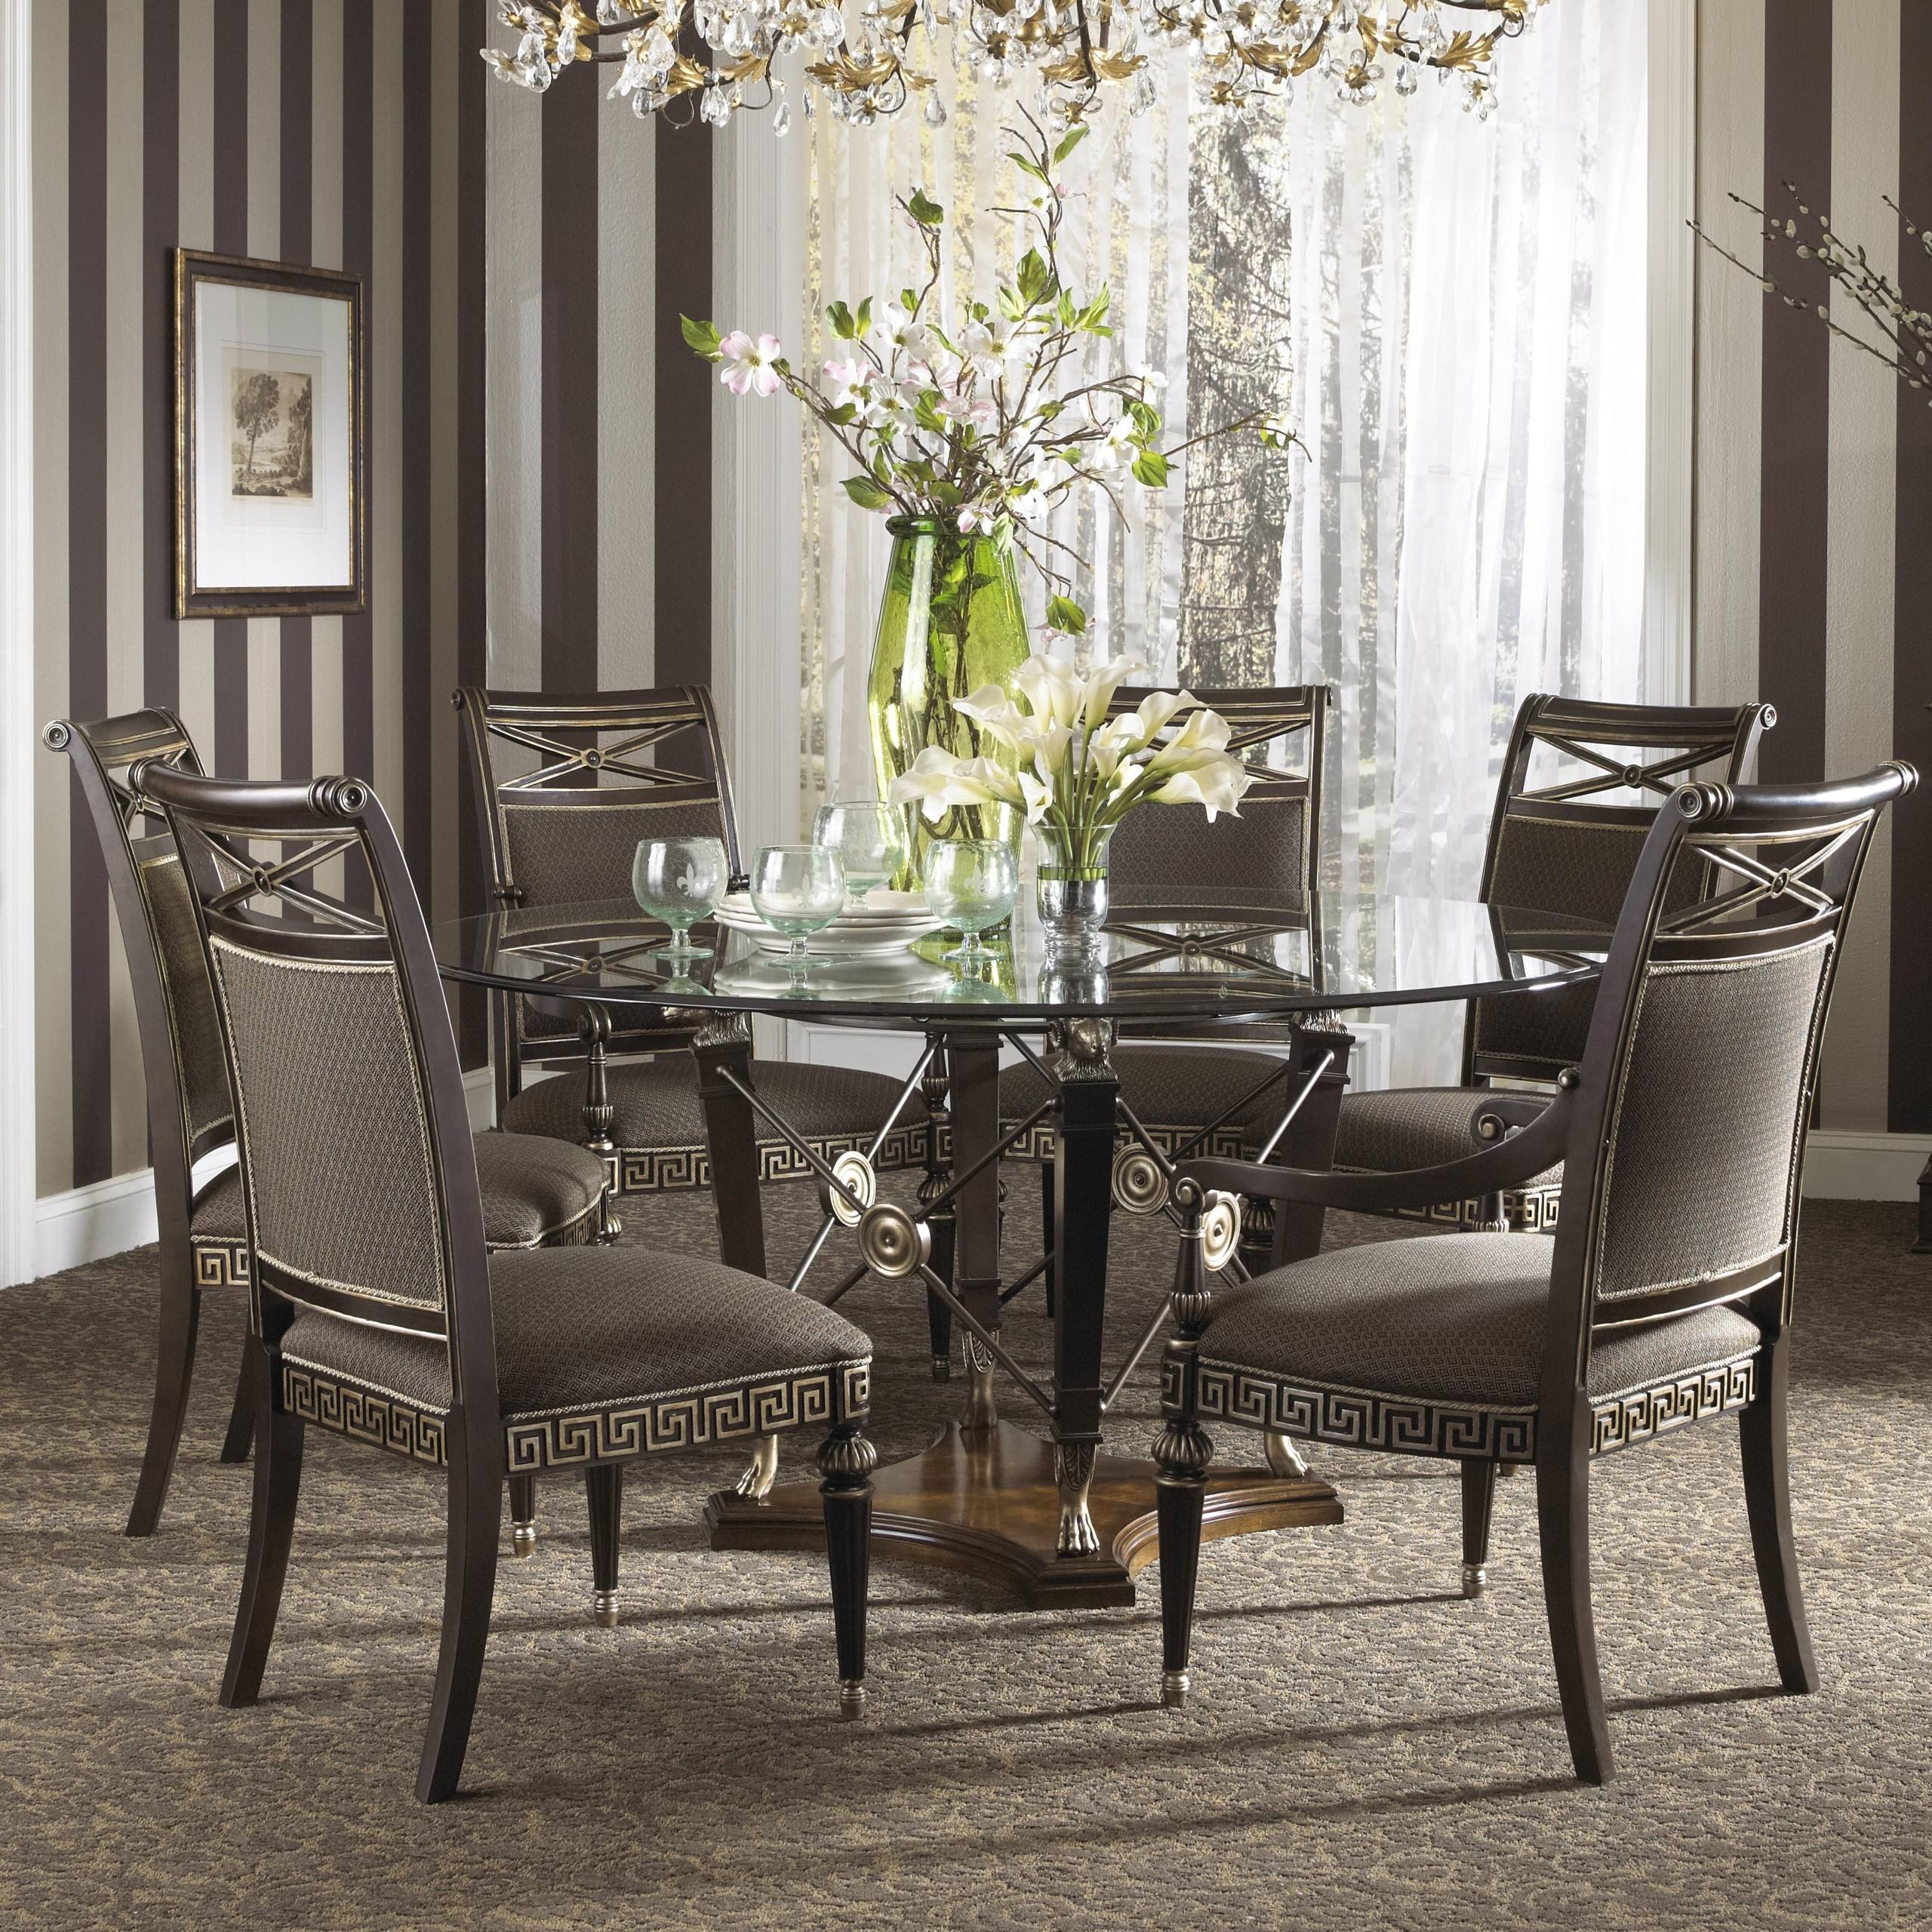 Pier 1 Imports Glass Table Tops